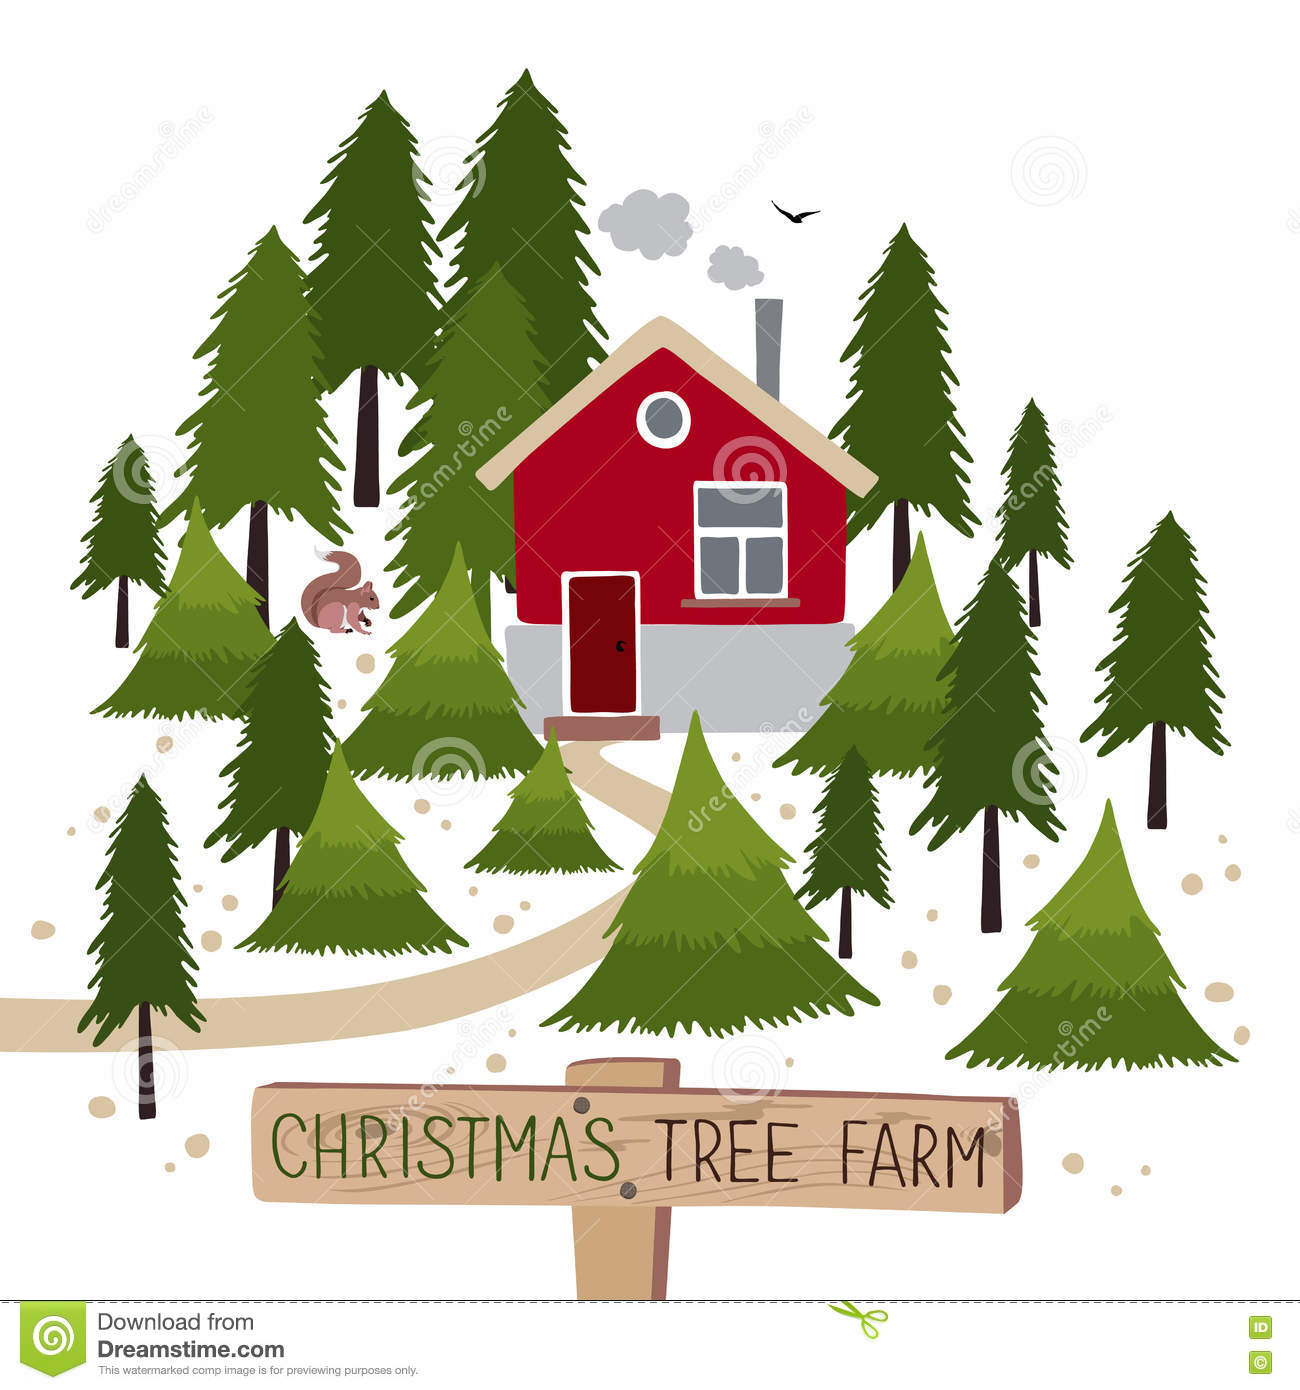 christmas tree farm vector illustration - Christmas Tree Farms For Sale